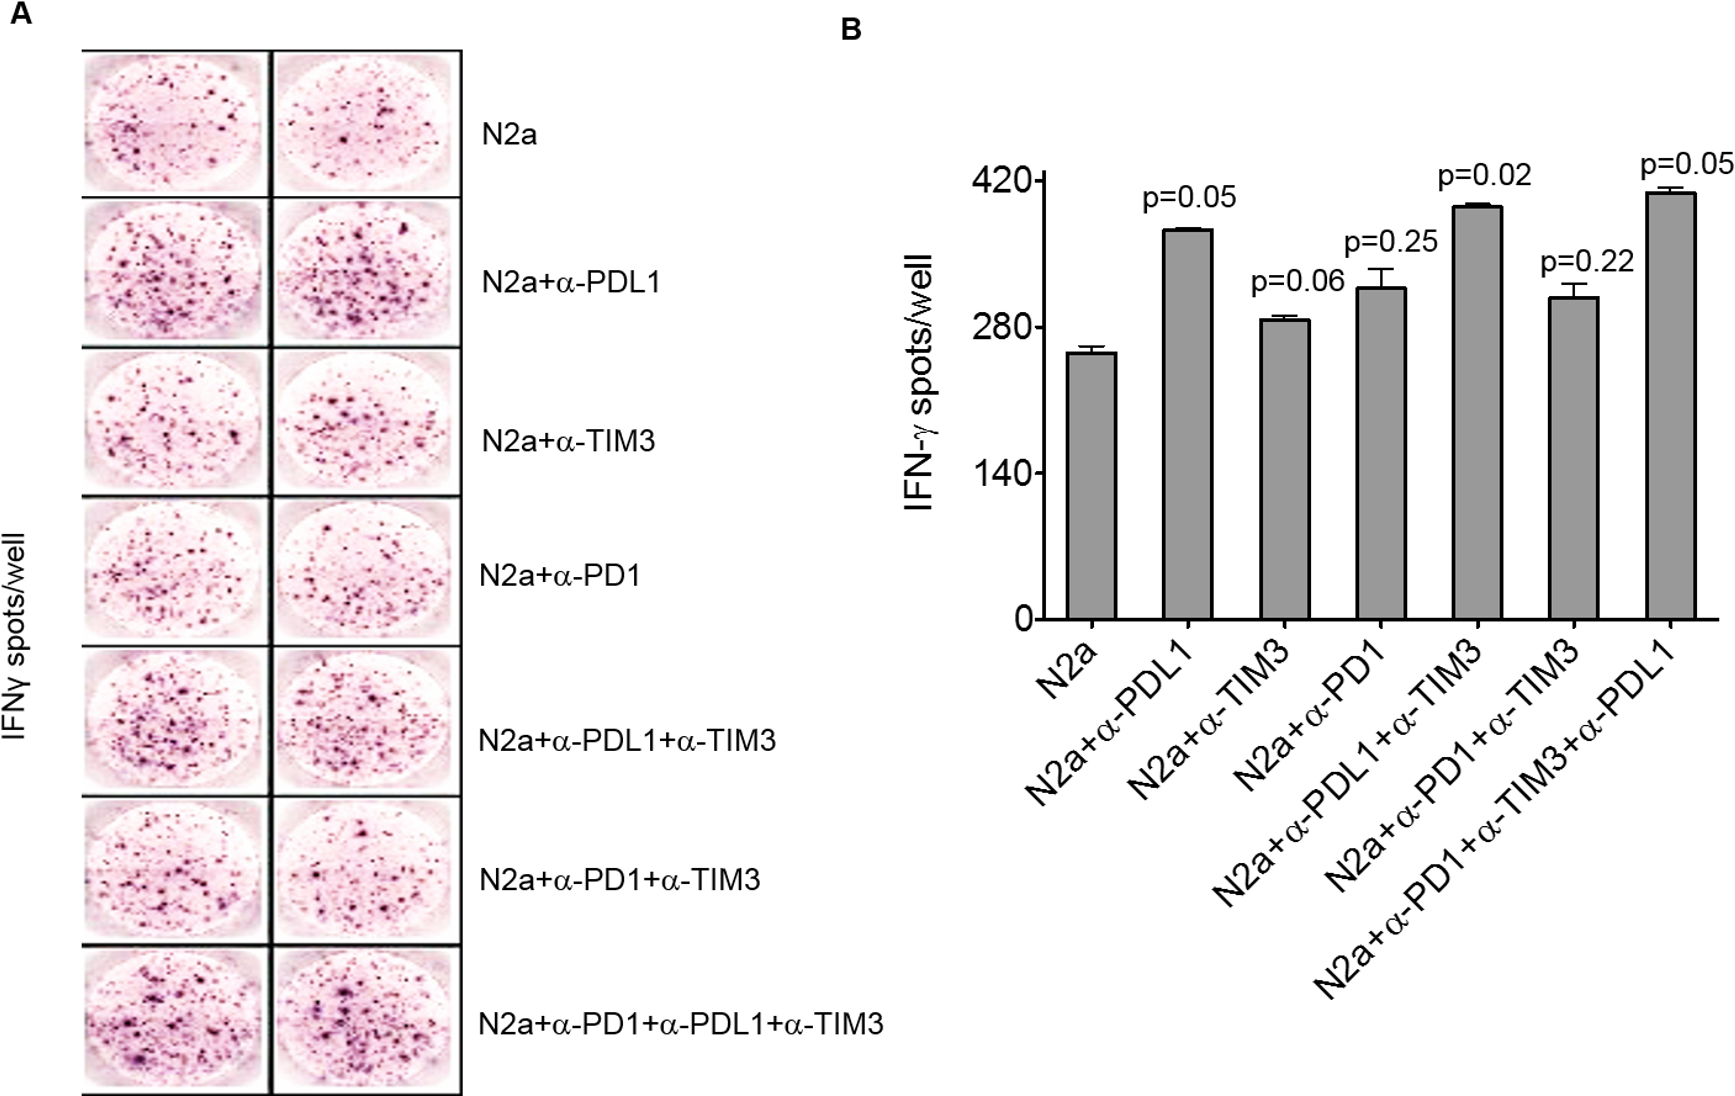 Programmed cell death-ligand 1 (PD-L1) blockade boosts interferon gamma (IFNγ) production of tumor-infiltrating lymphocytes (TILs) in vitro.